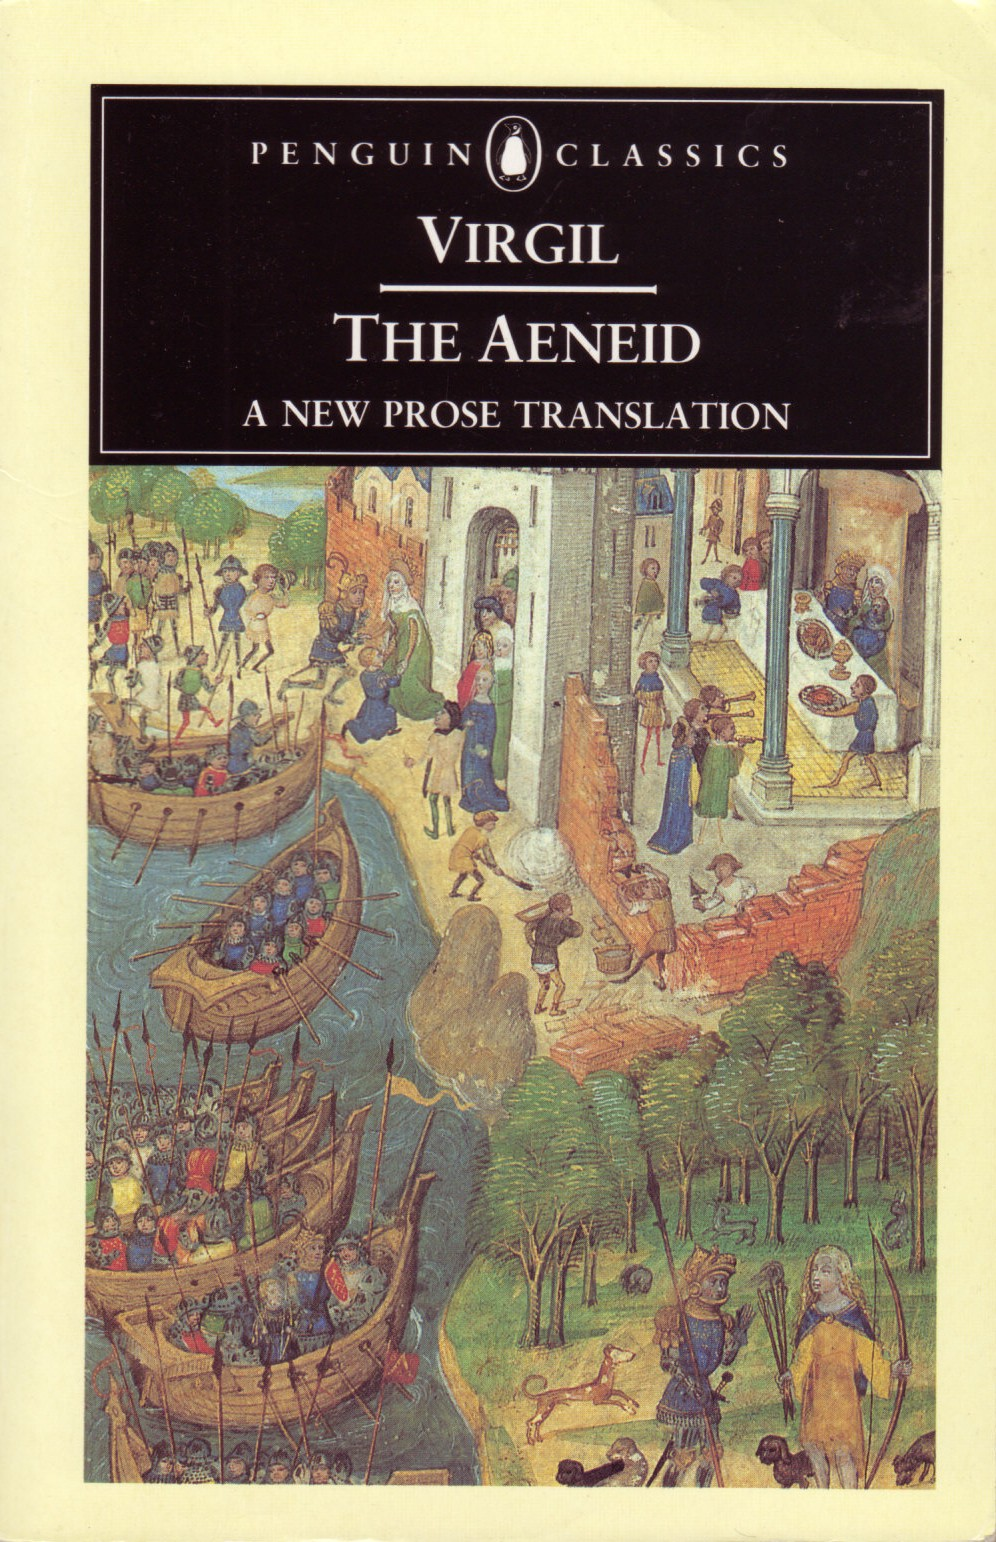 the aeneid poem by virgil Mosaic of virgil writing the 'aeneid' alongside muses clio and melpomene virgil's last work was the 'aeneid', an epic poem in 12 books which looks back to homer's two epic poems the 'odyssey' and the 'iliad', of the eighth century bc.